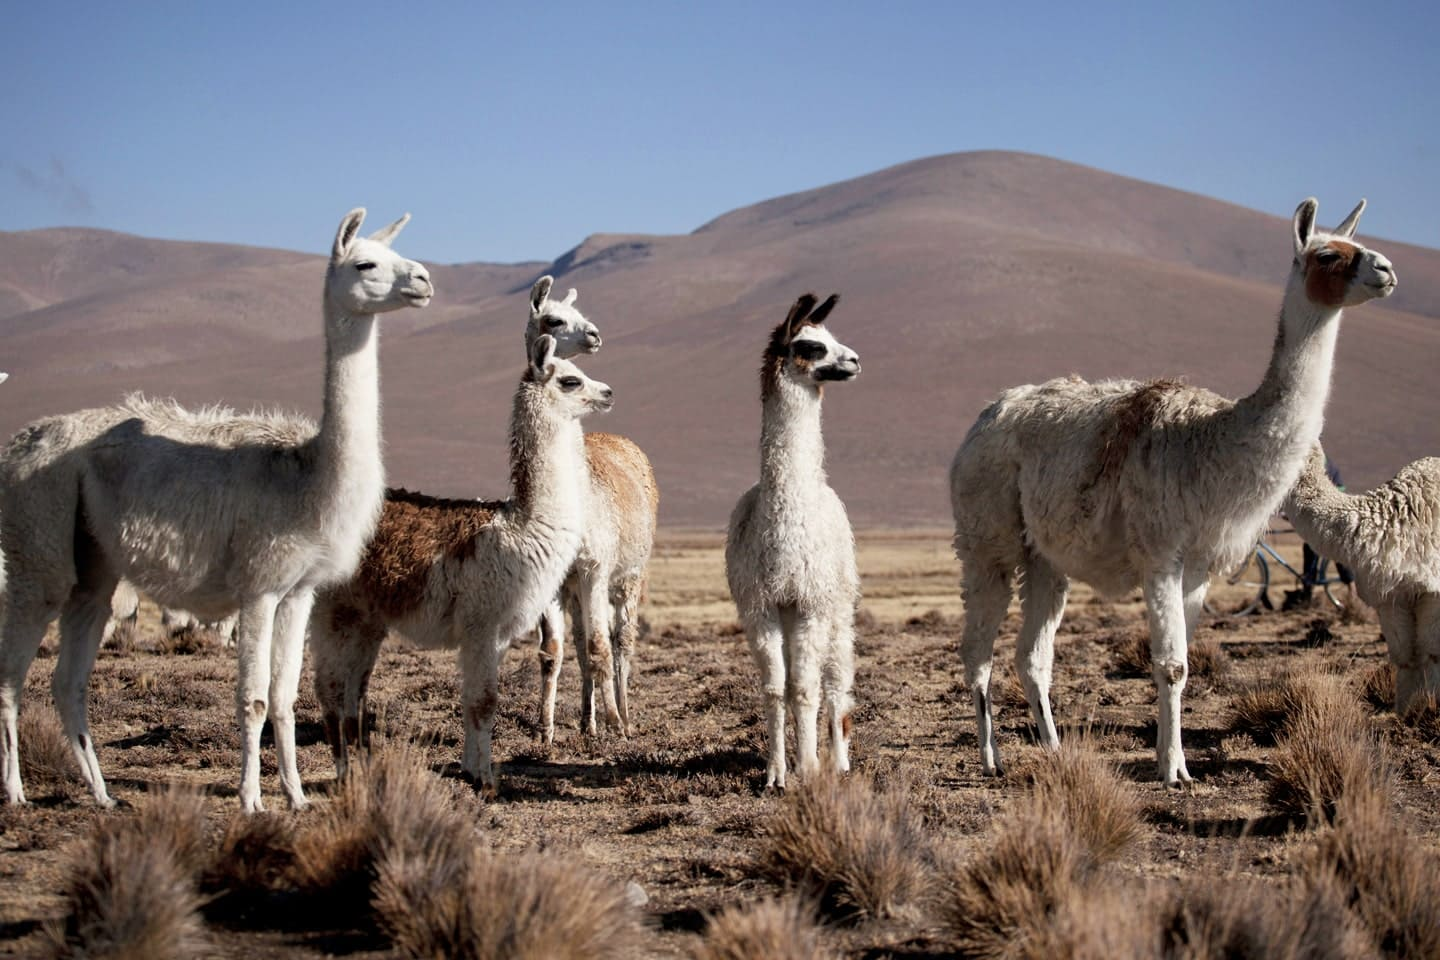 Group of alpacas in the plateau of Peru